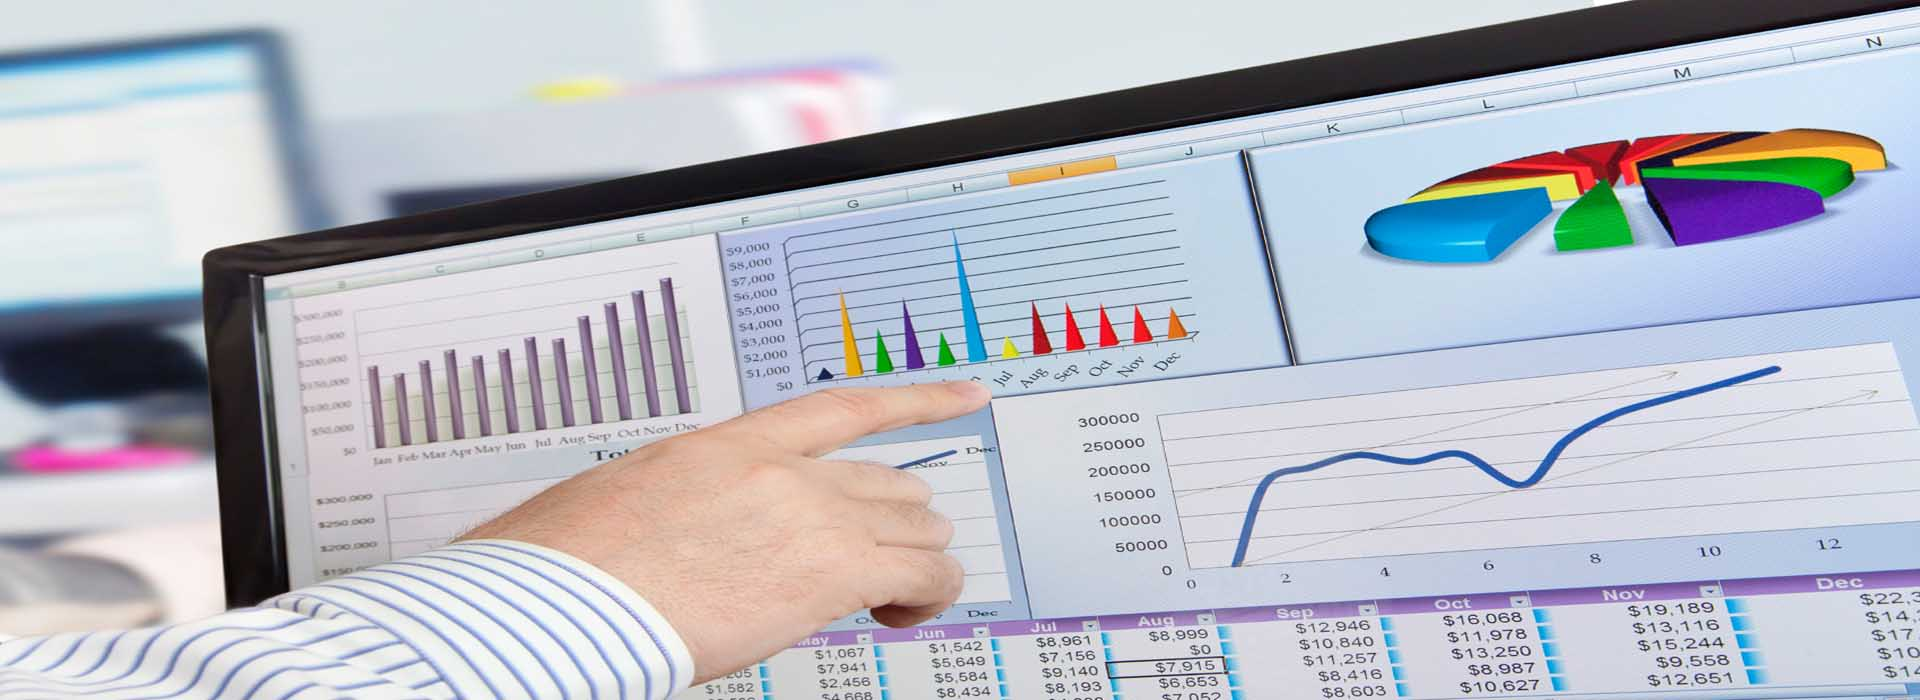 Use Financial Modeling Services to Seize New Opportunities